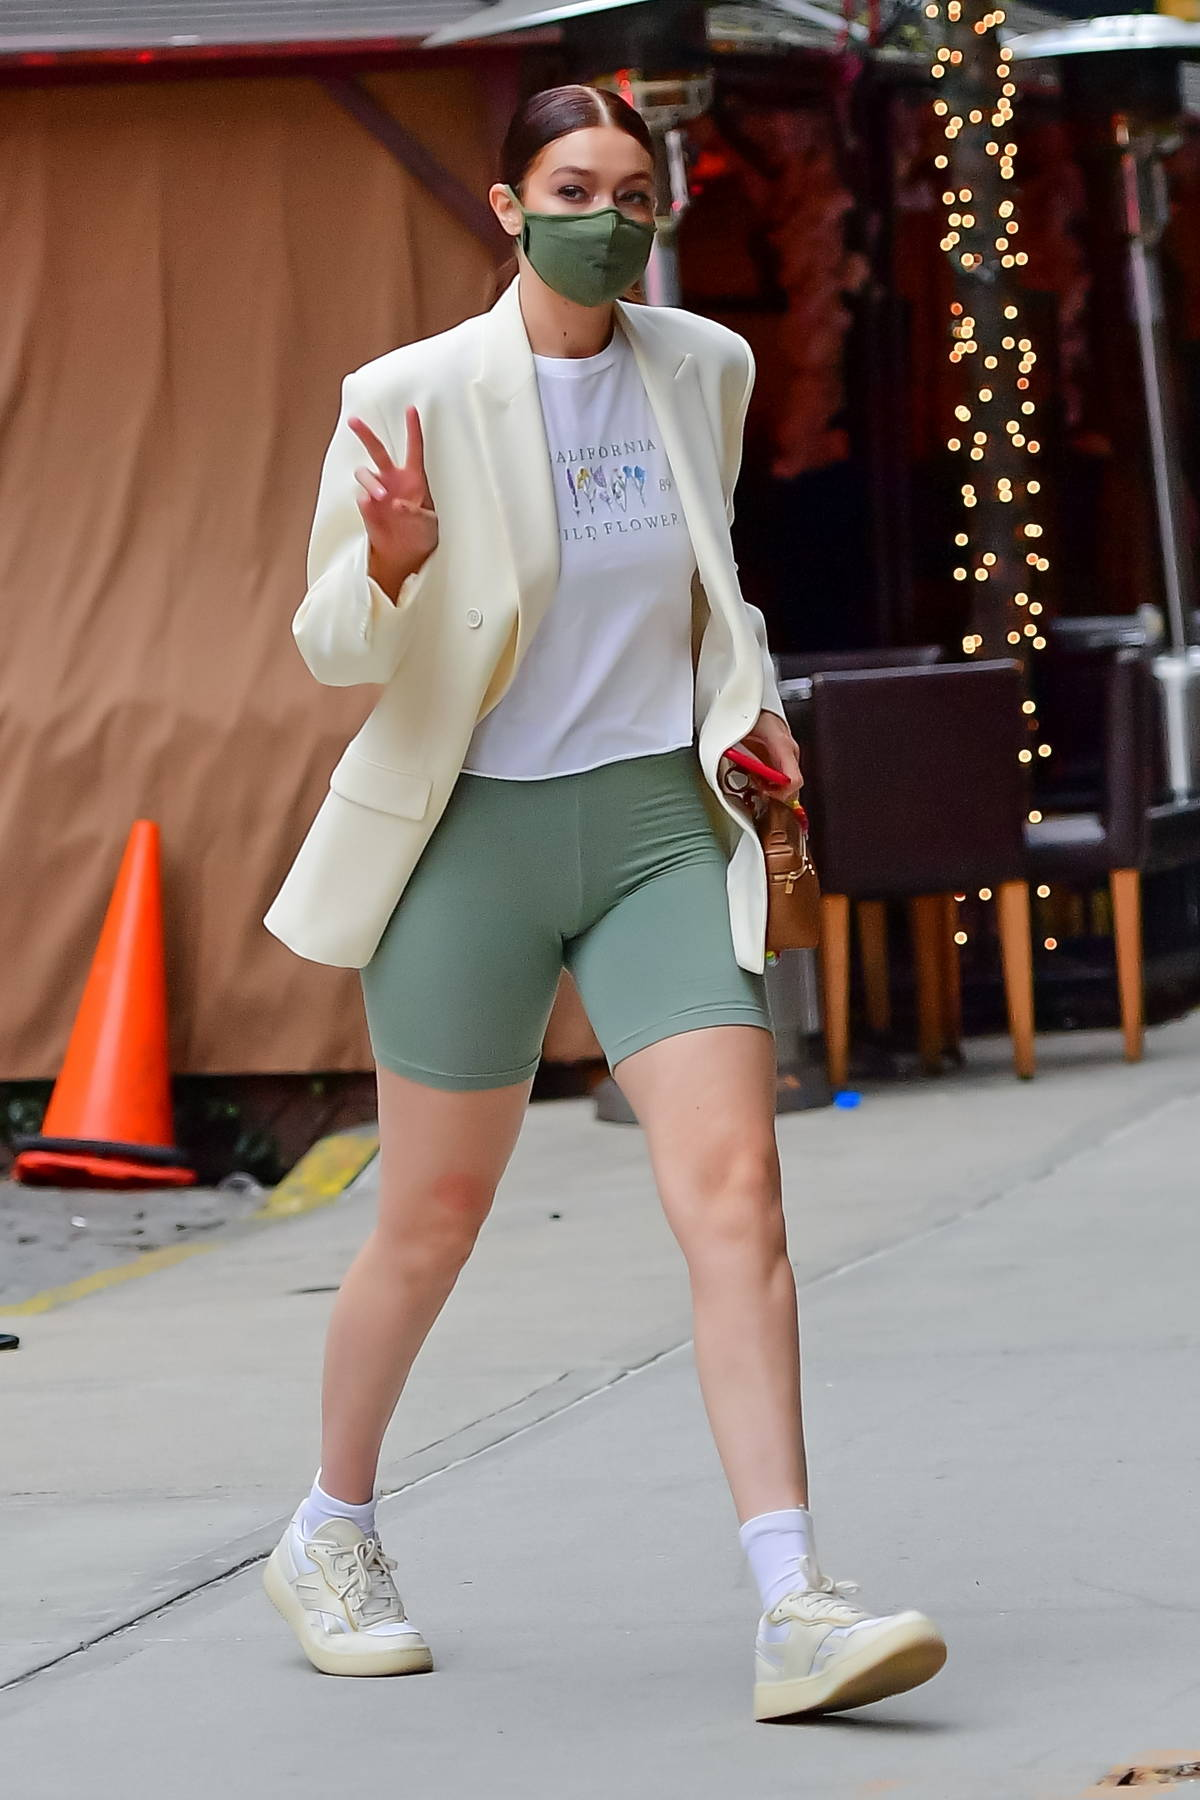 Gigi Hadid flaunts her toned legs in green legging shorts as she arrives at her apartment in New York City